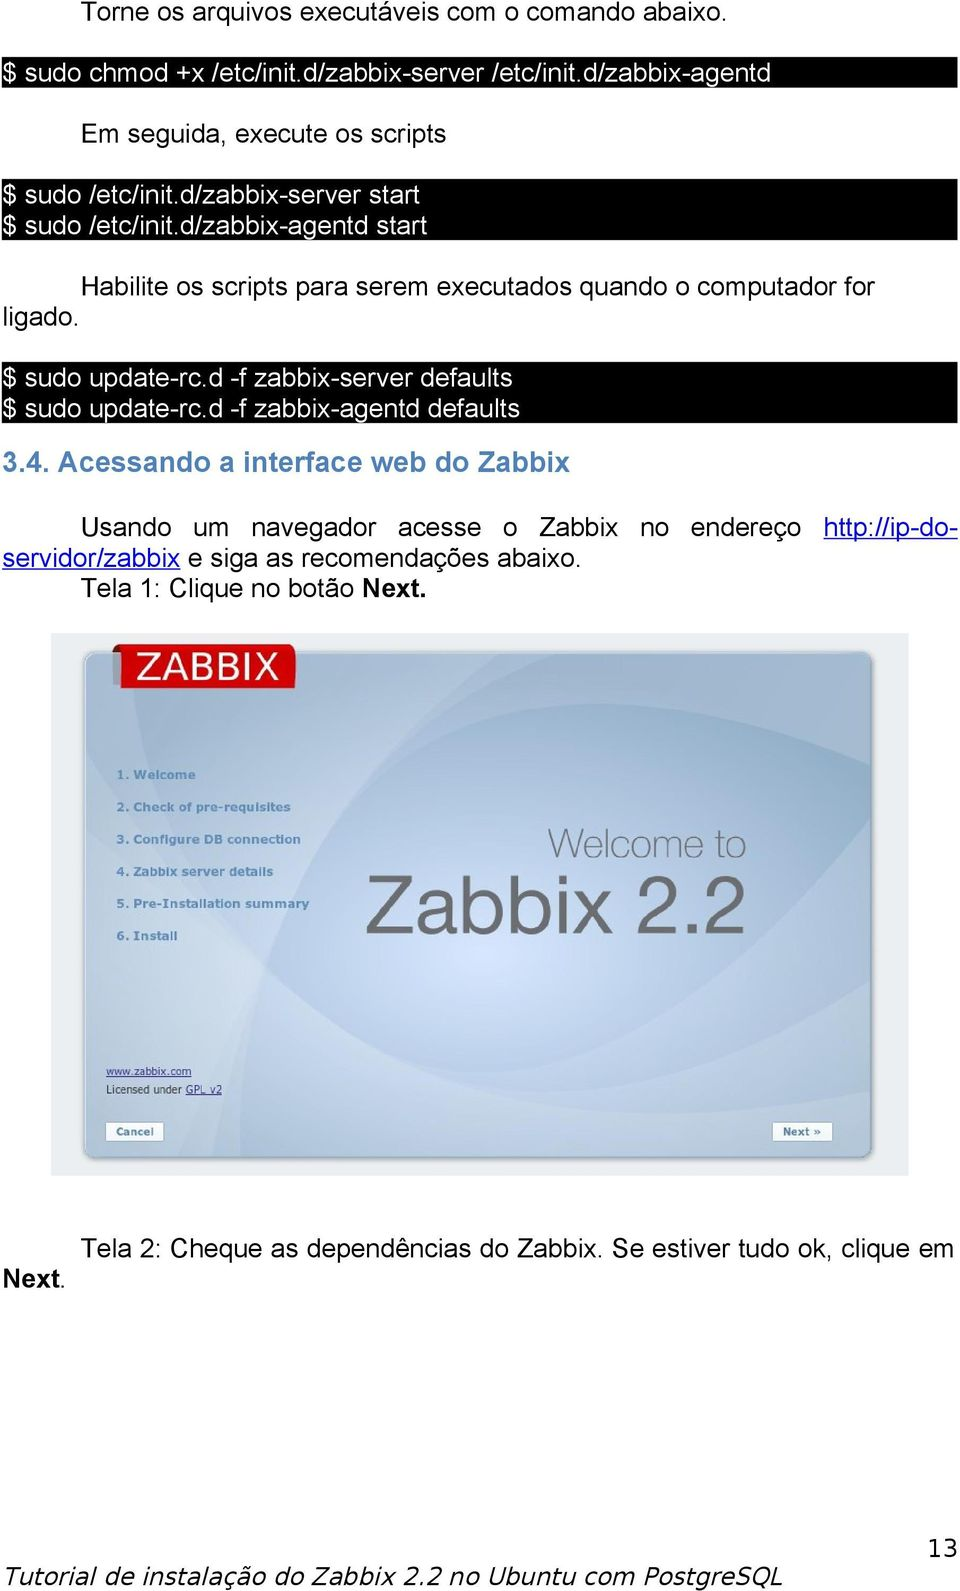 d/zabbix-agentd start Habilite os scripts para serem executados quando o computador for ligado. $ sudo update-rc.d -f zabbix-server defaults $ sudo update-rc.